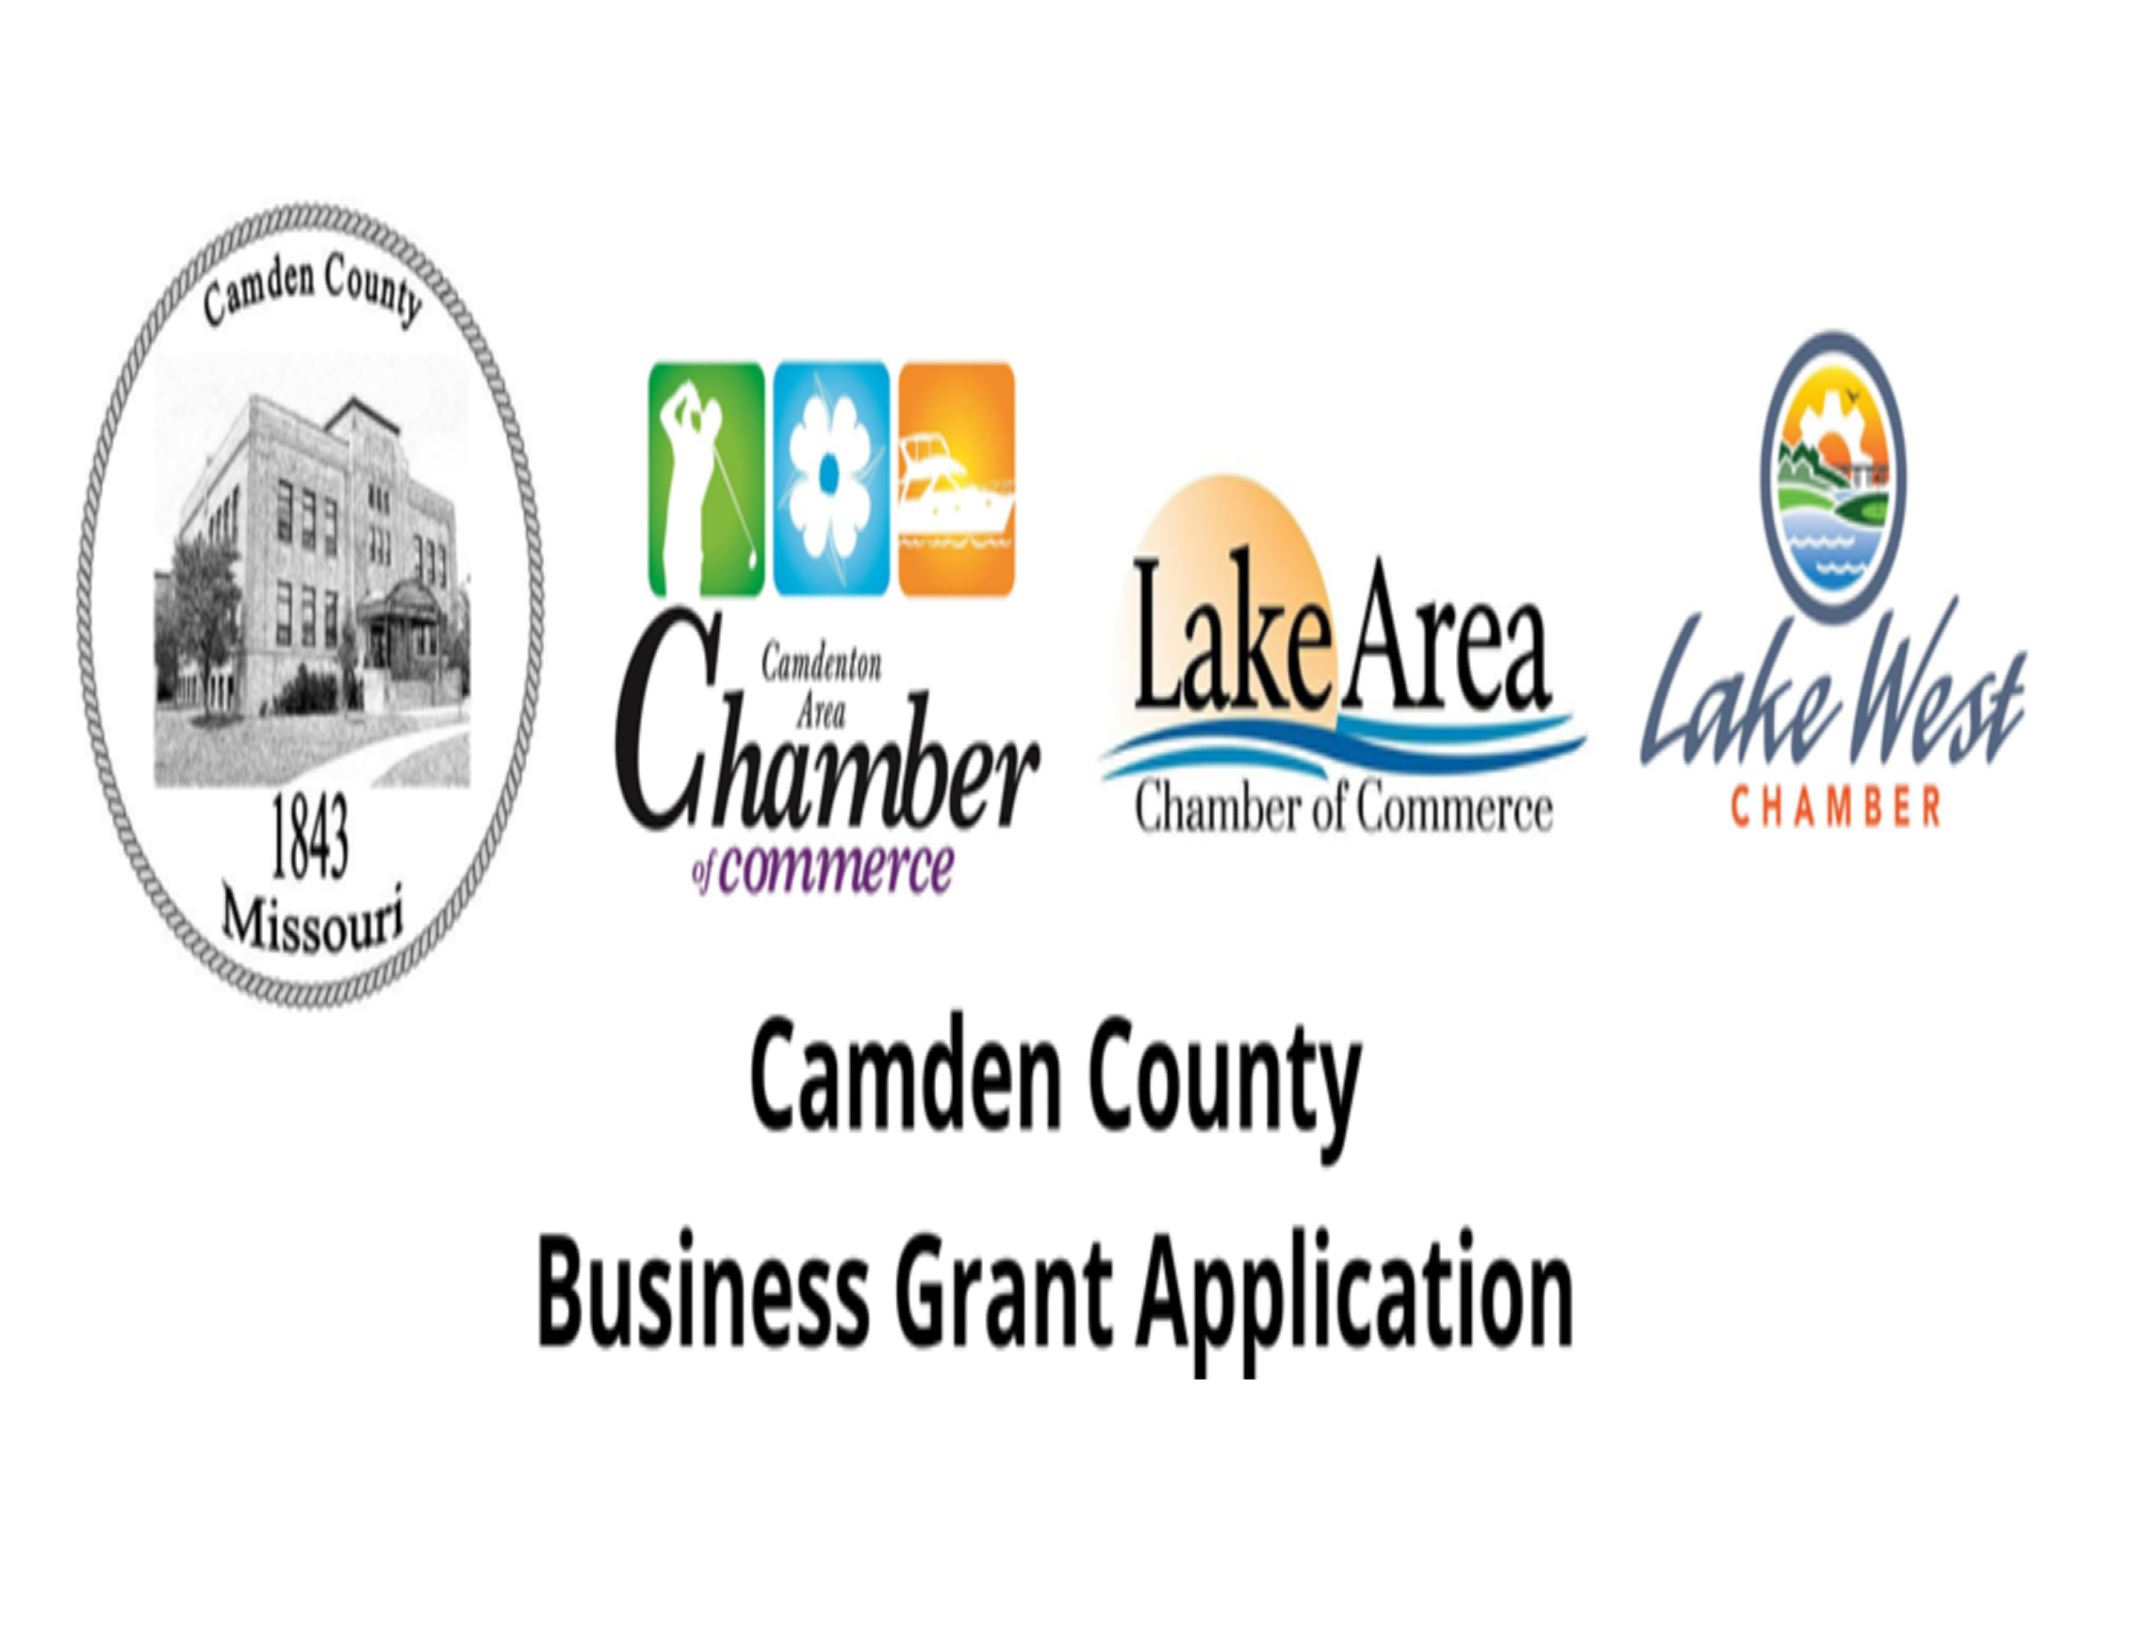 2020 Camden County Business Grant Application